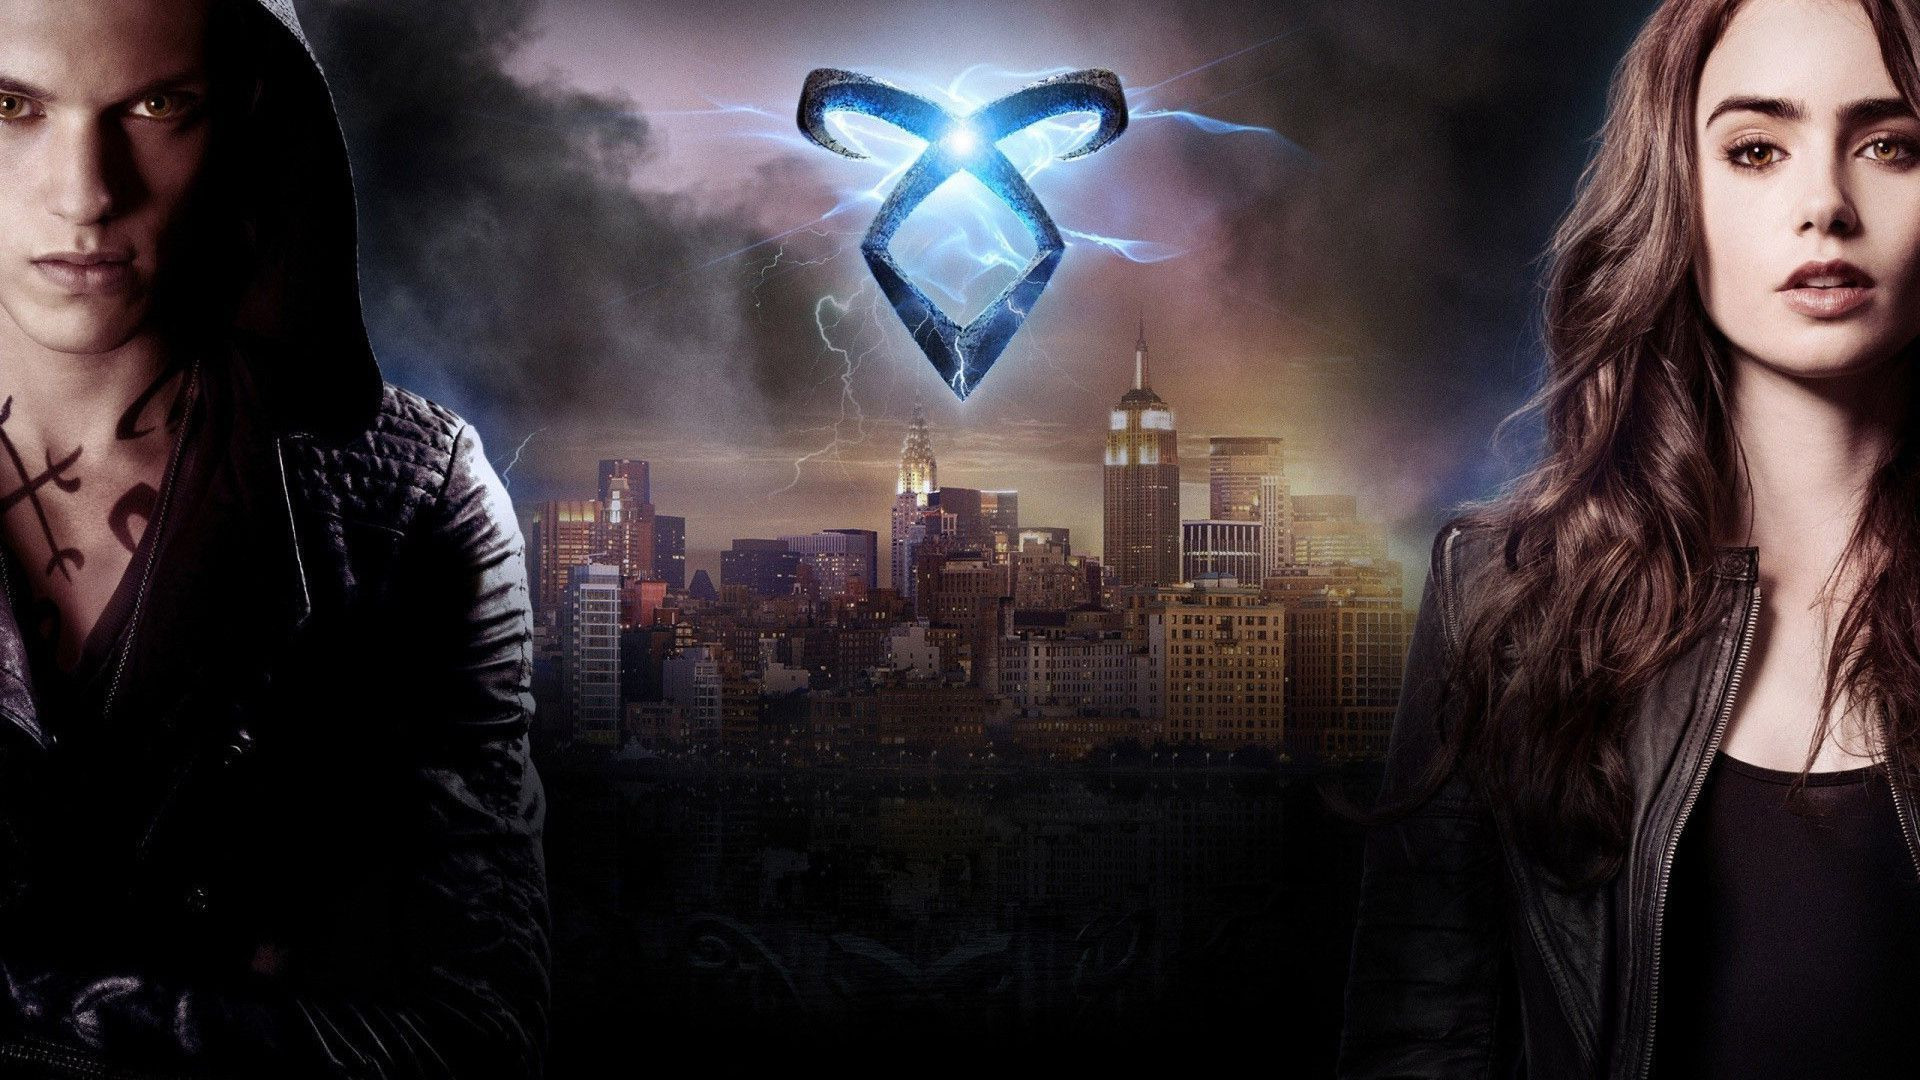 the mortal instruments wallpapers - wallpaper cave | android